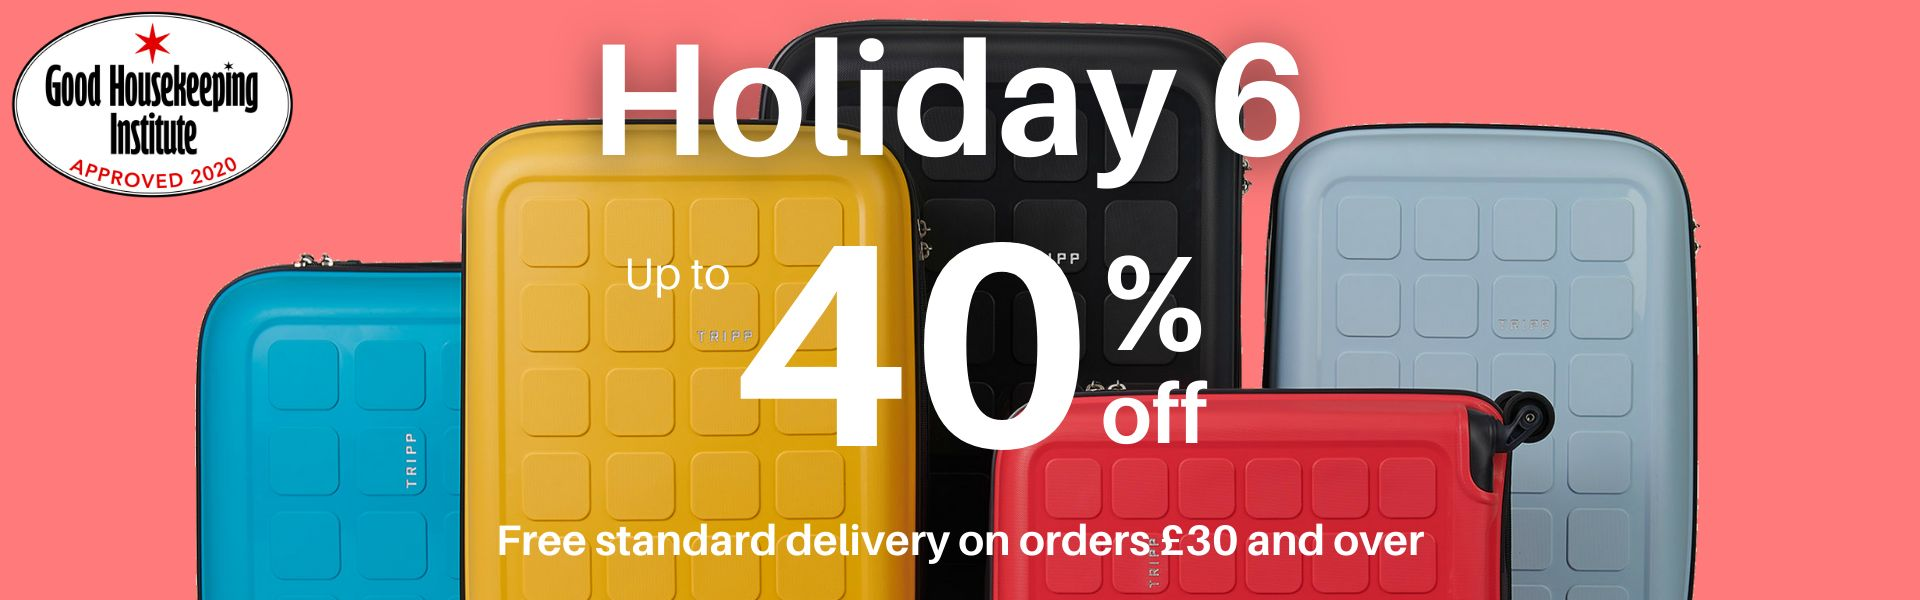 Up to 40% off Holiday 6